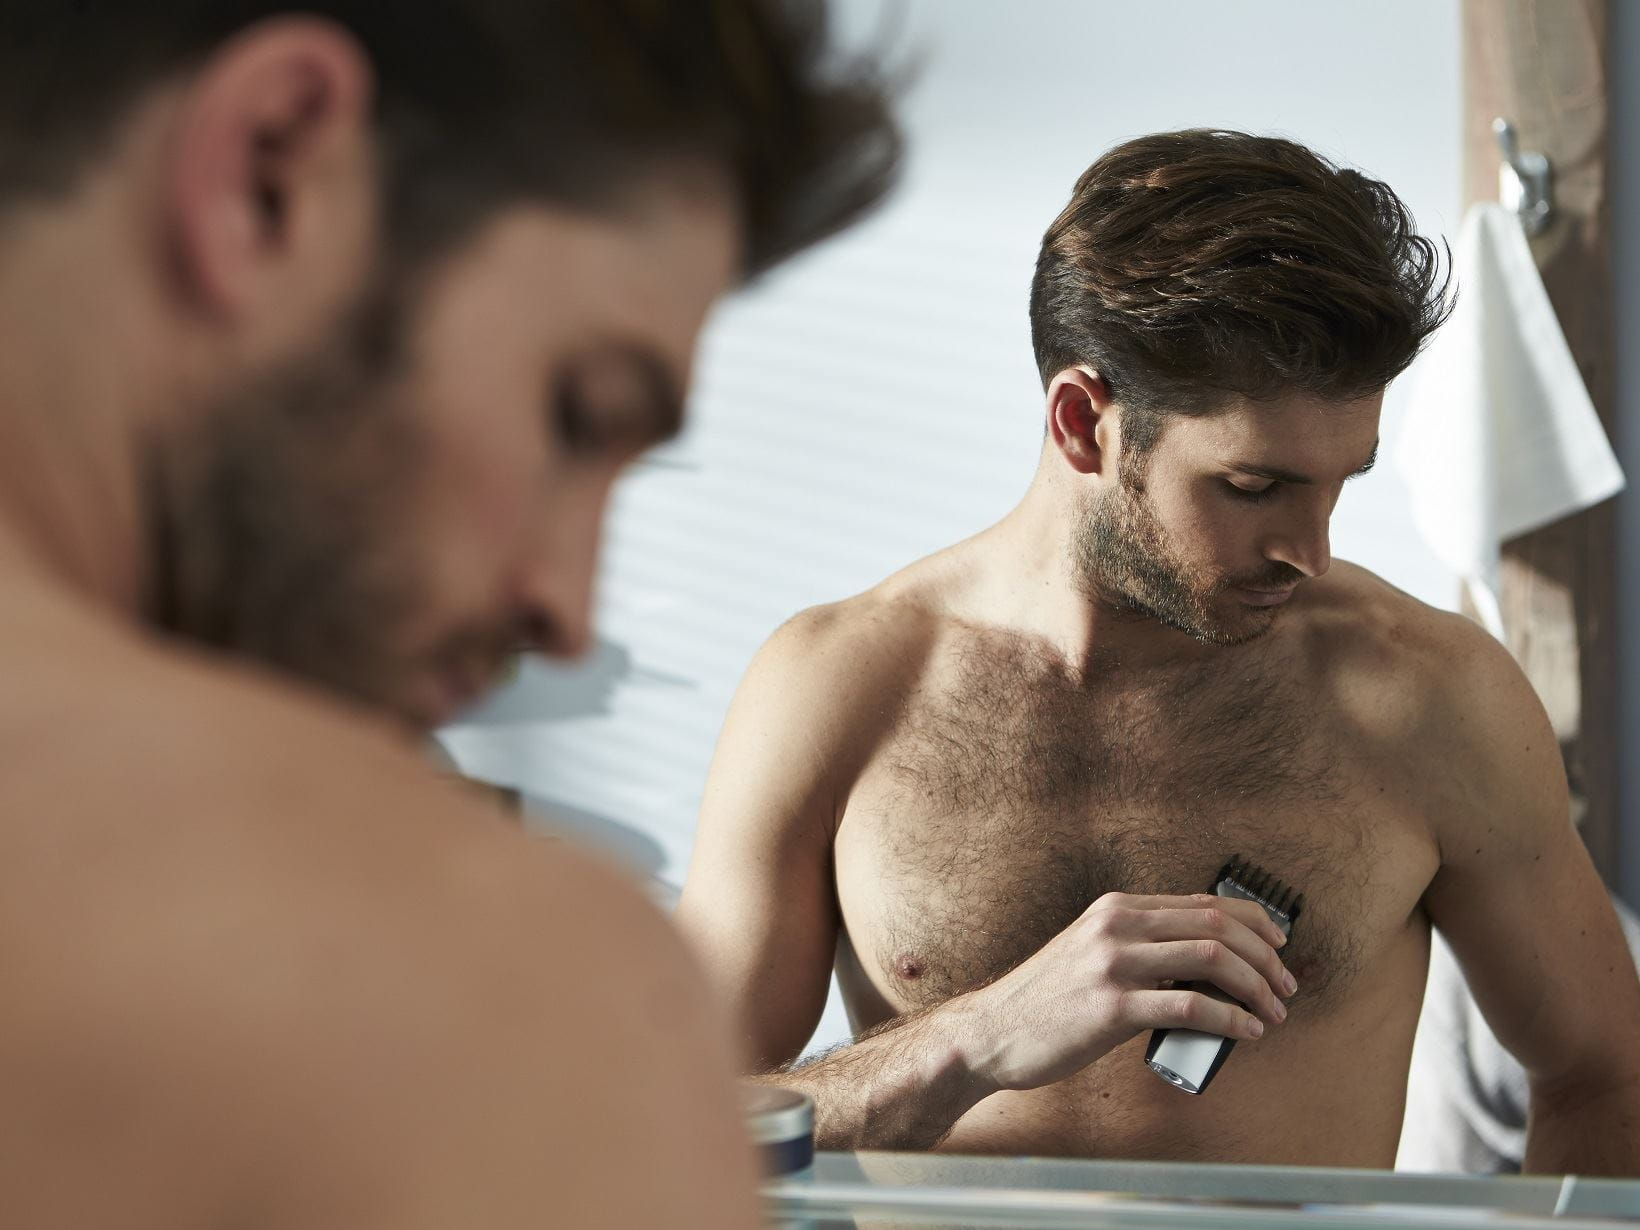 man manscaping his chest hair with a razor